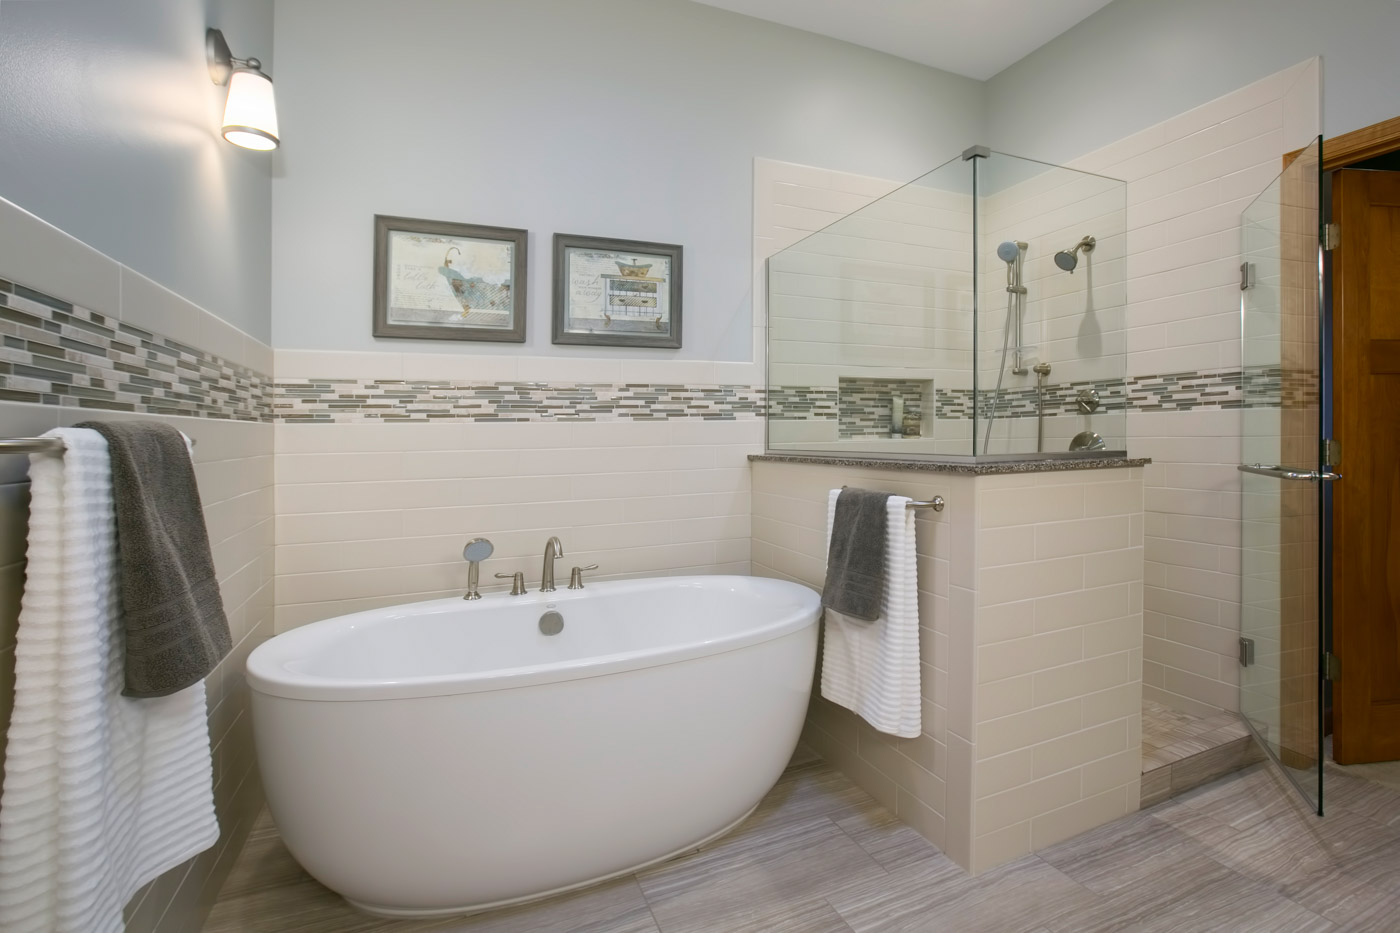 Bathroom Fixtures Twin Cities professional bathroom remodeling services | james barton design-build